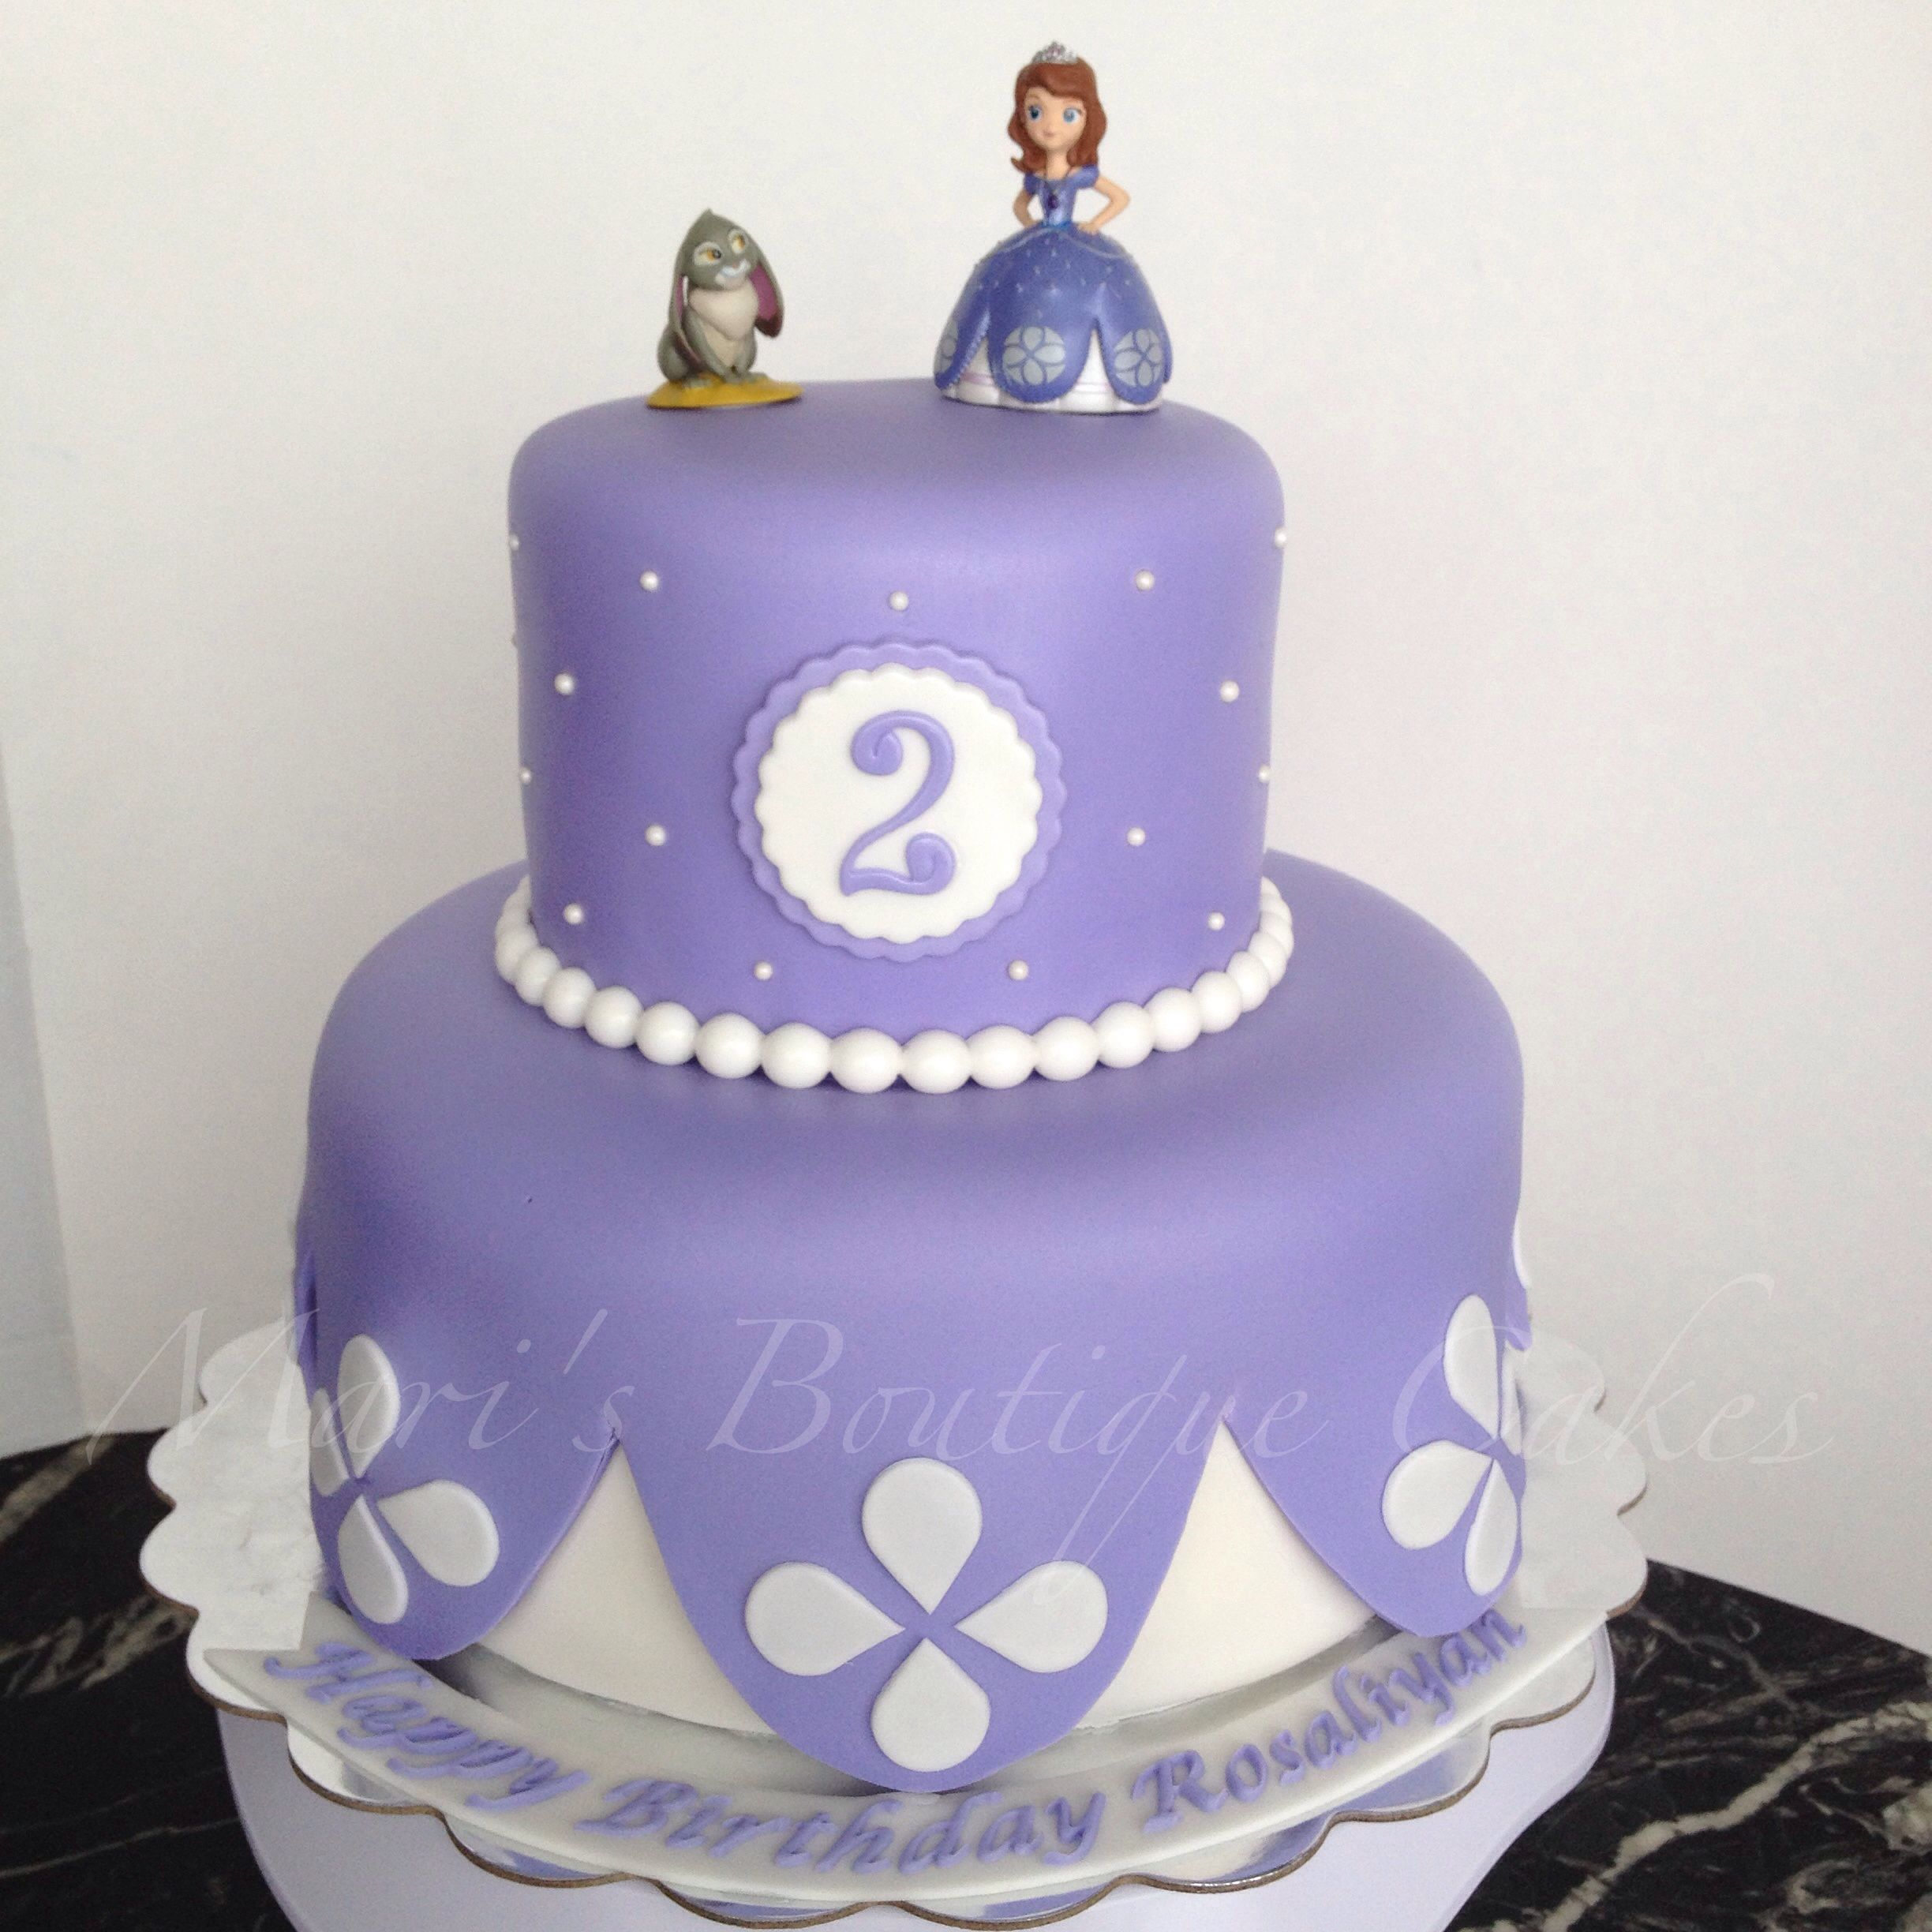 Pleasing Sophia The First Cake By Maris Boutique Cakes Sofia The First Funny Birthday Cards Online Overcheapnameinfo